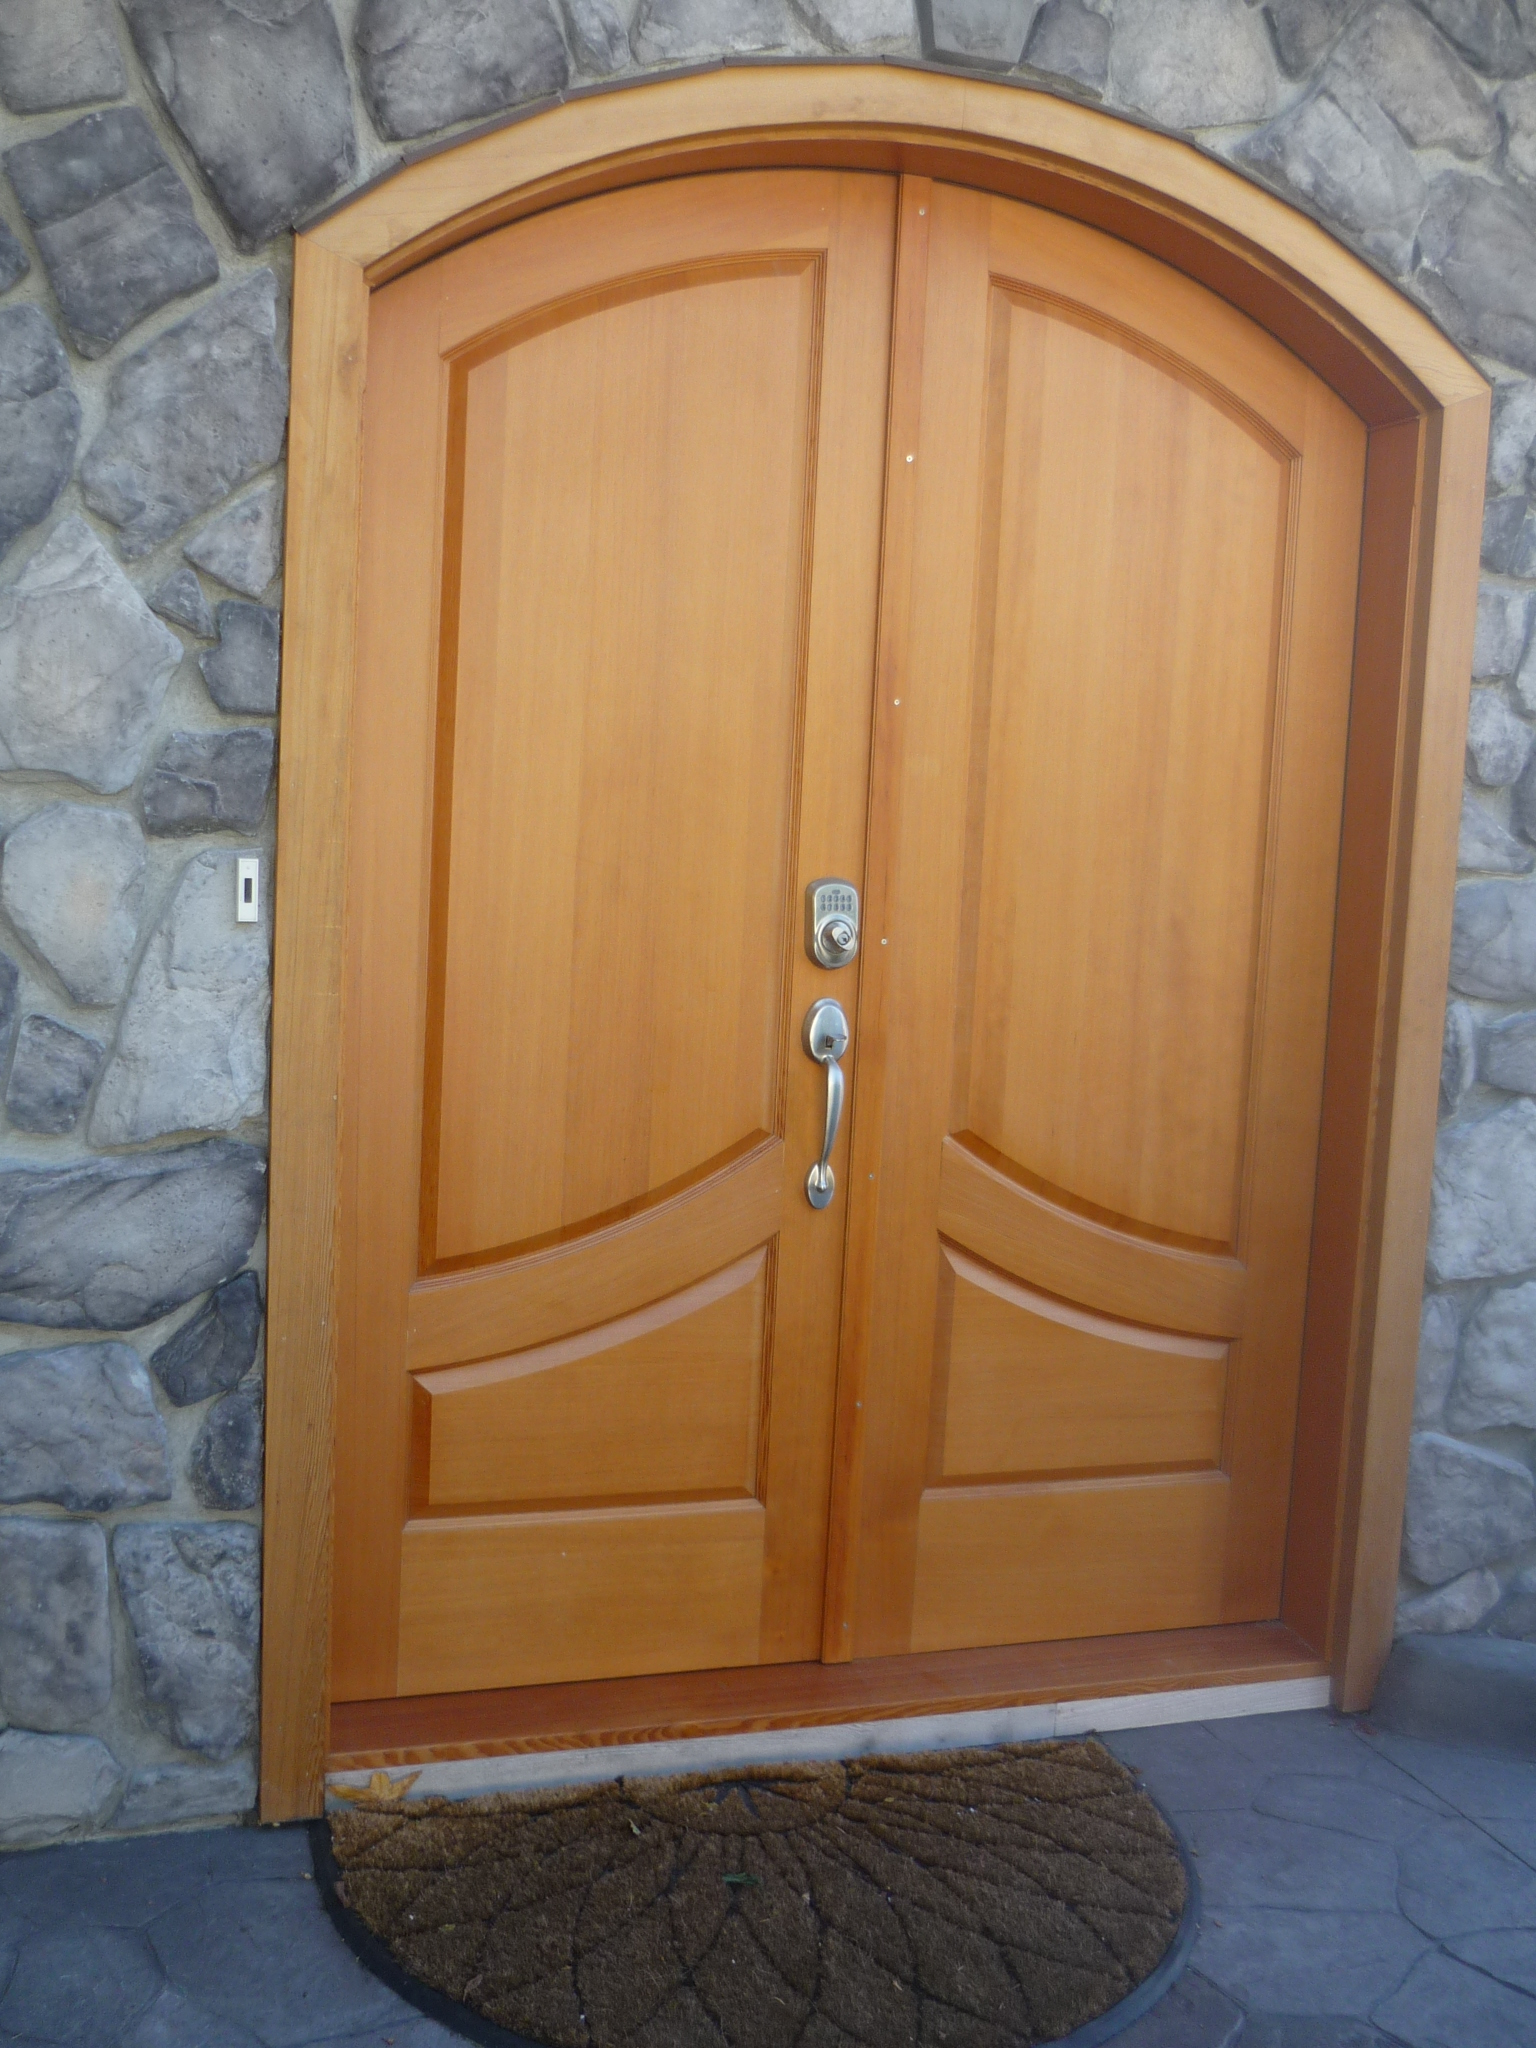 2048 #764625 Wooden Doors For Rooms Http://www.pic2fly.com/Beautiful Wooden Doors  image Beautiful Wooden Doors 46731536